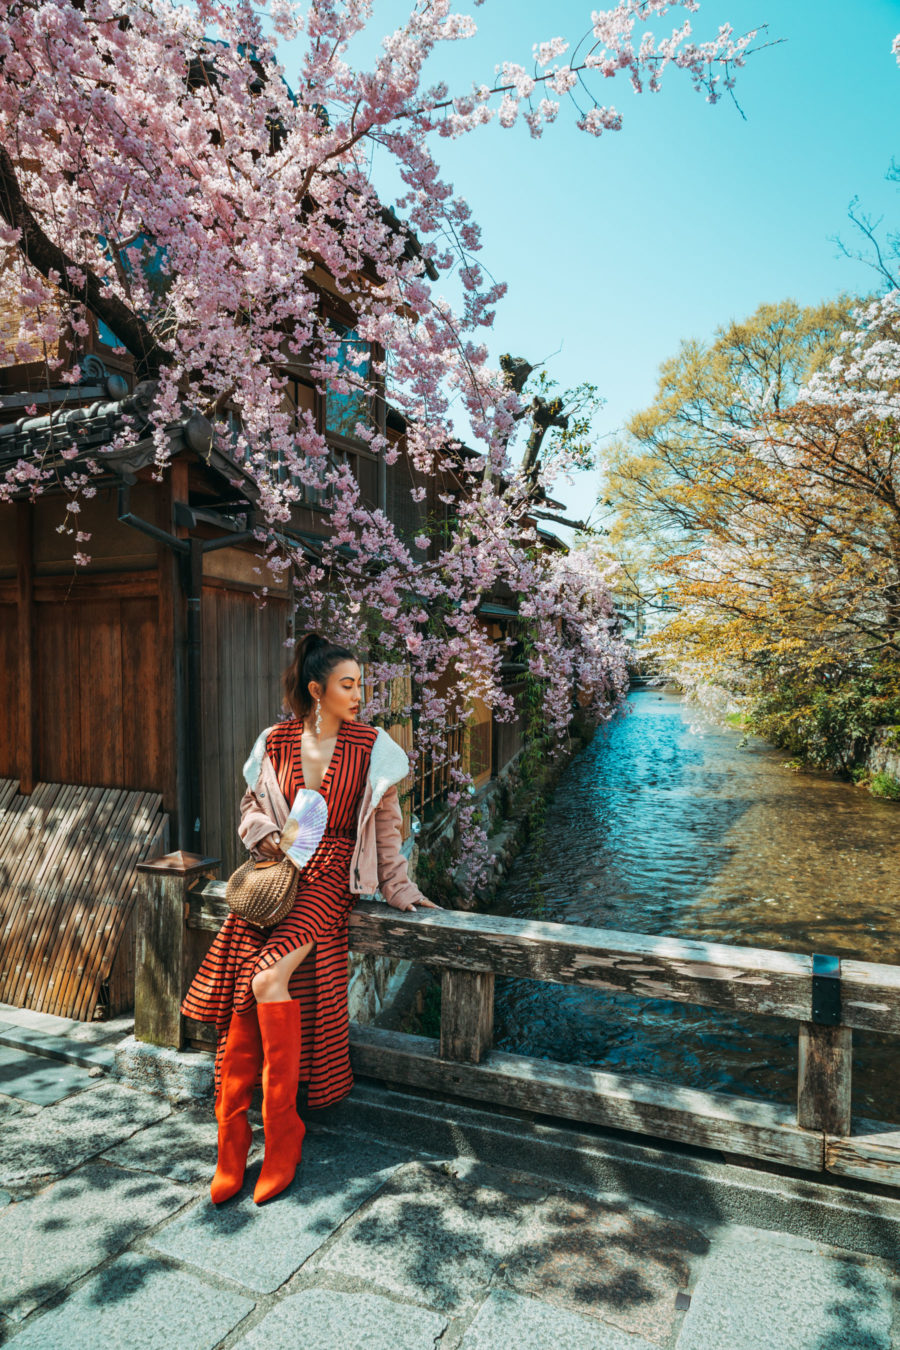 7 Best Spots for Cherry Blossoms in Japan - Kyoto - Stroll along Shirakawa River of Gion, luxury travel blogger // Notjessfashion.com